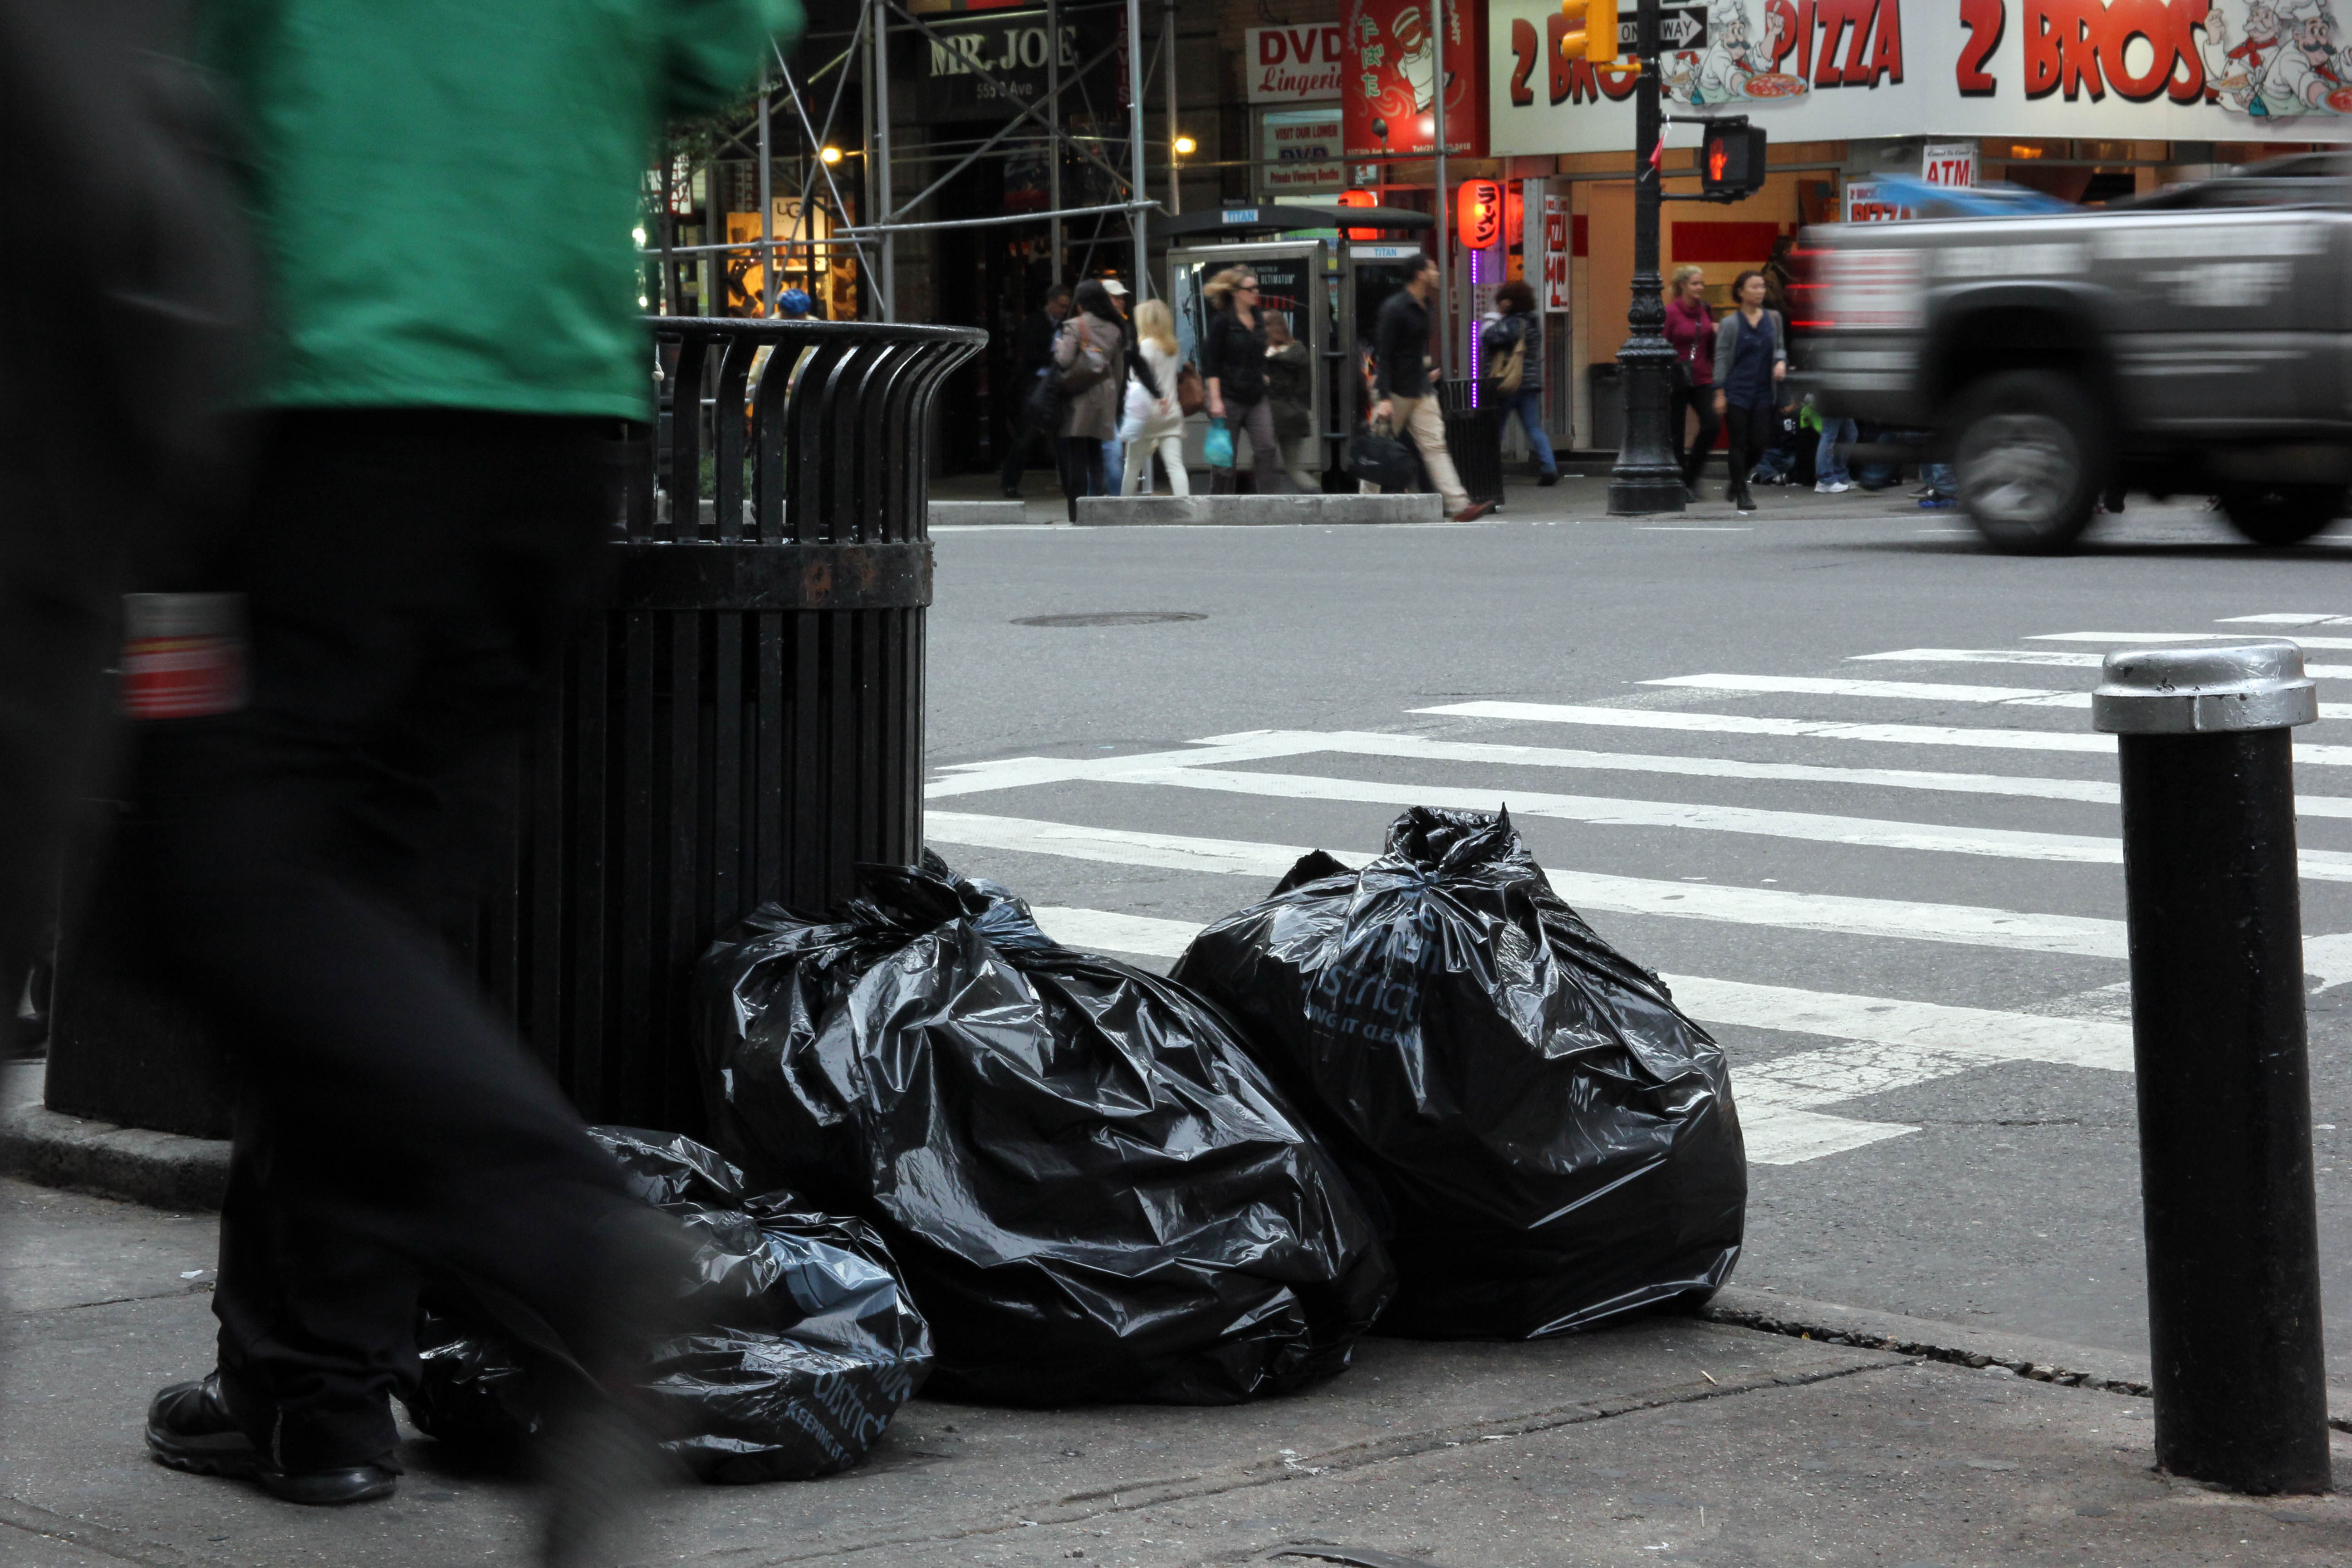 Group tells businesses: Stop dumping on Bronx